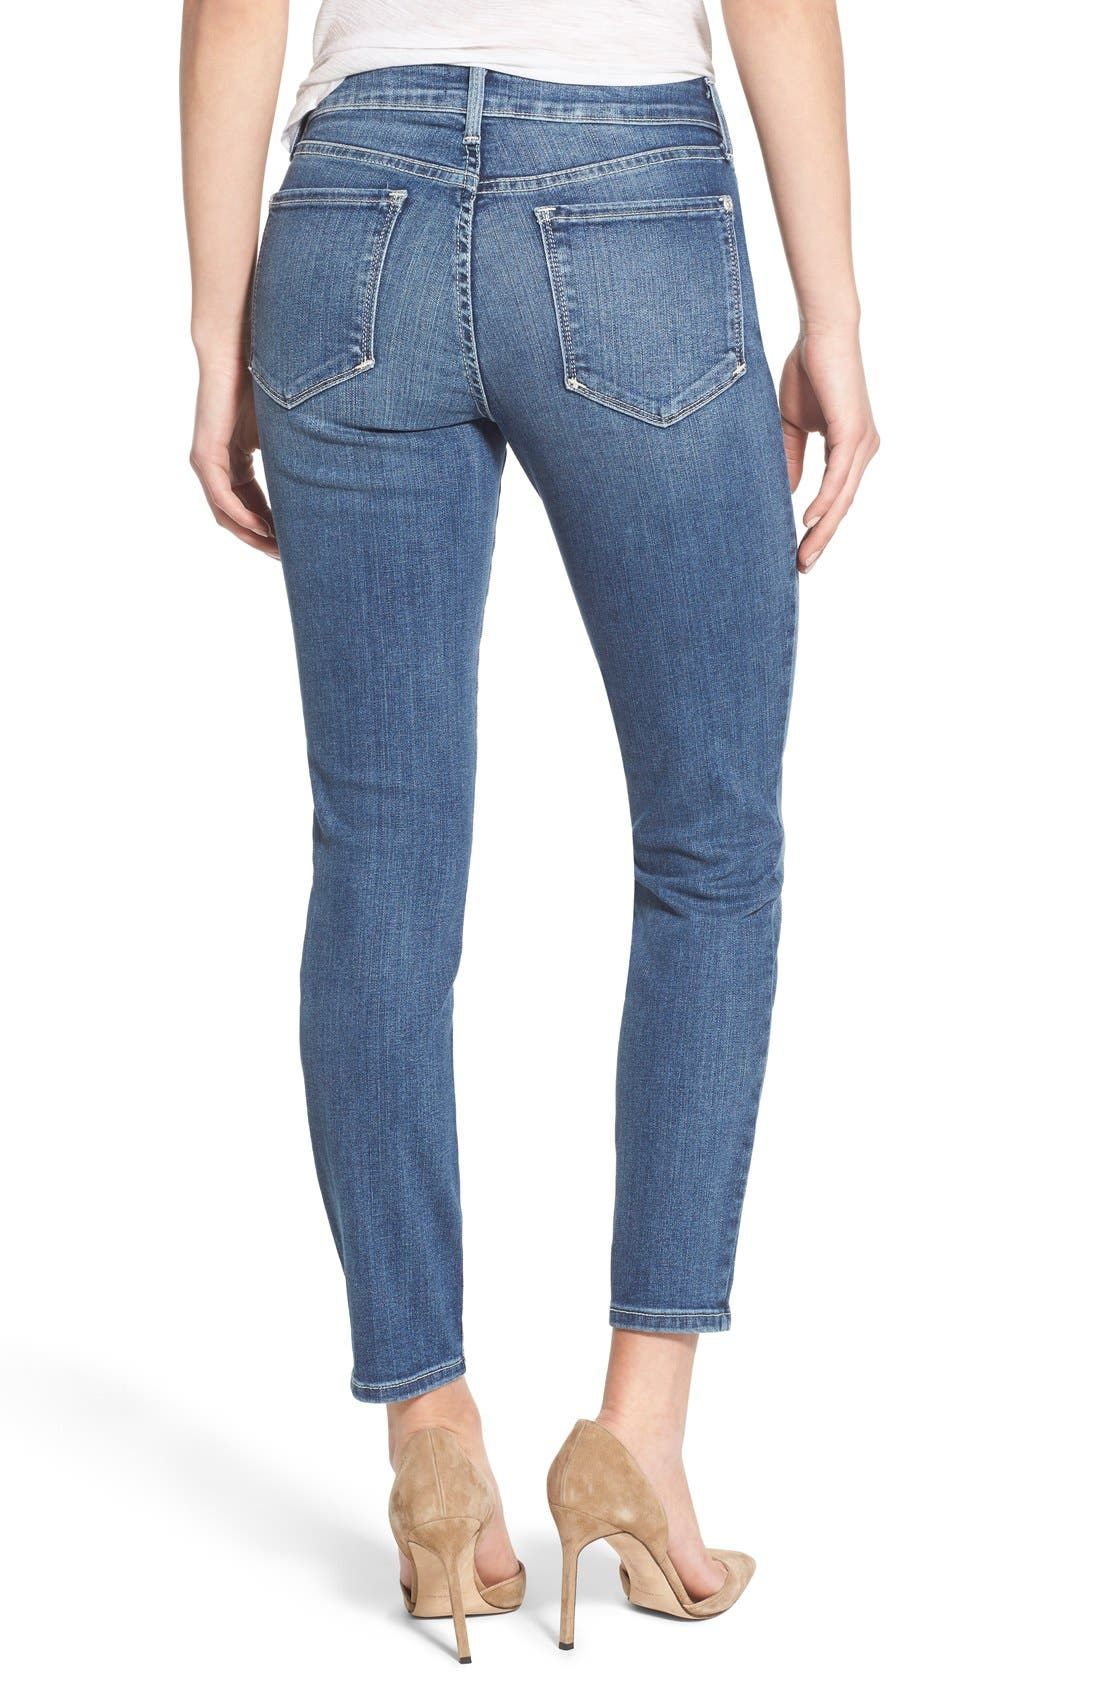 'Clarissa' Stretch Ankle Skinny Jeans,                             Alternate thumbnail 2, color,                             421